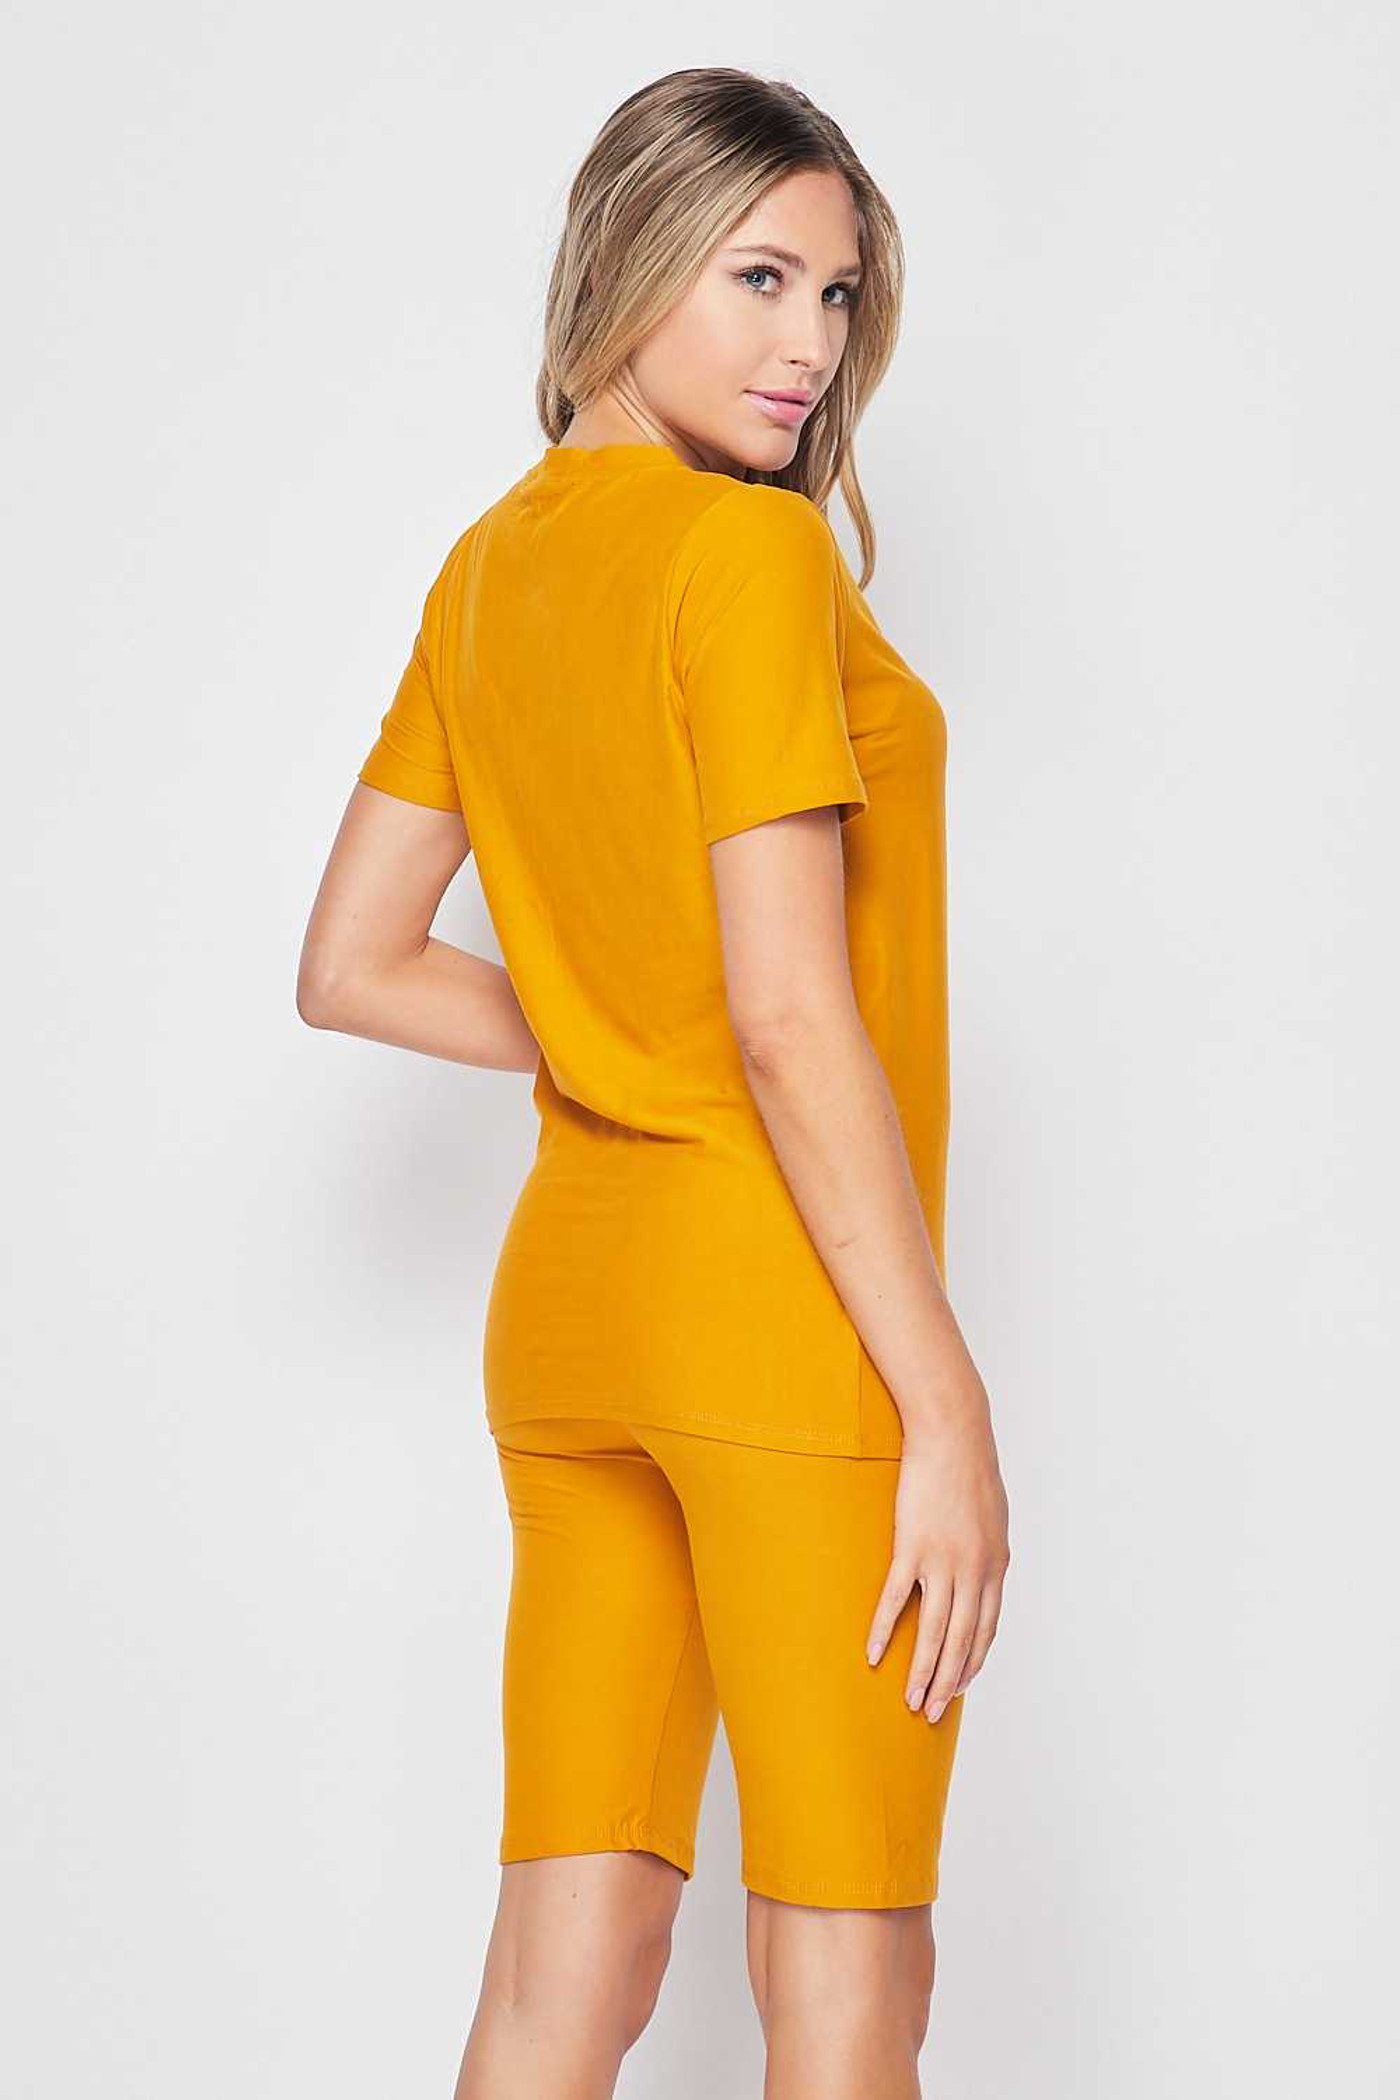 45 degree back right side of Mustard Double Brushed Basic Solid Biker Shorts and T-Shirt Set